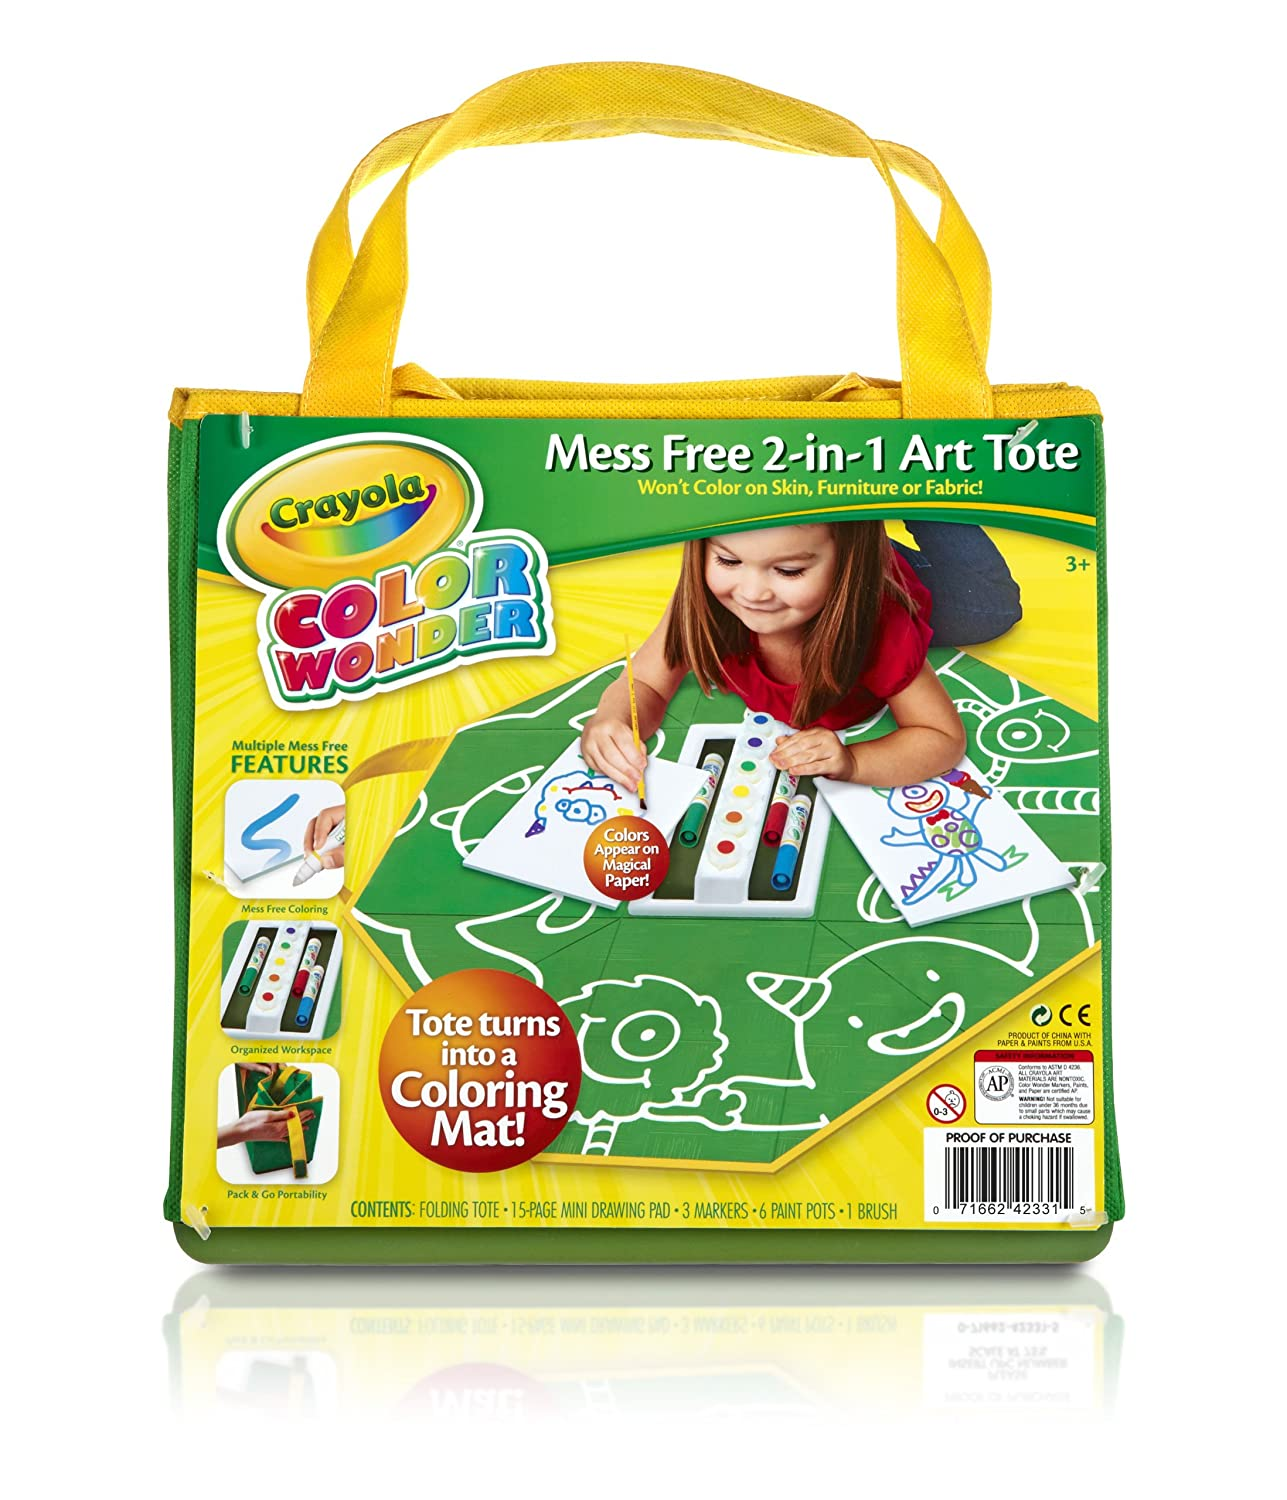 Crayola Color Wonder Mess Free 2-in-1 Art Tote: Amazon.co.uk: Toys ...